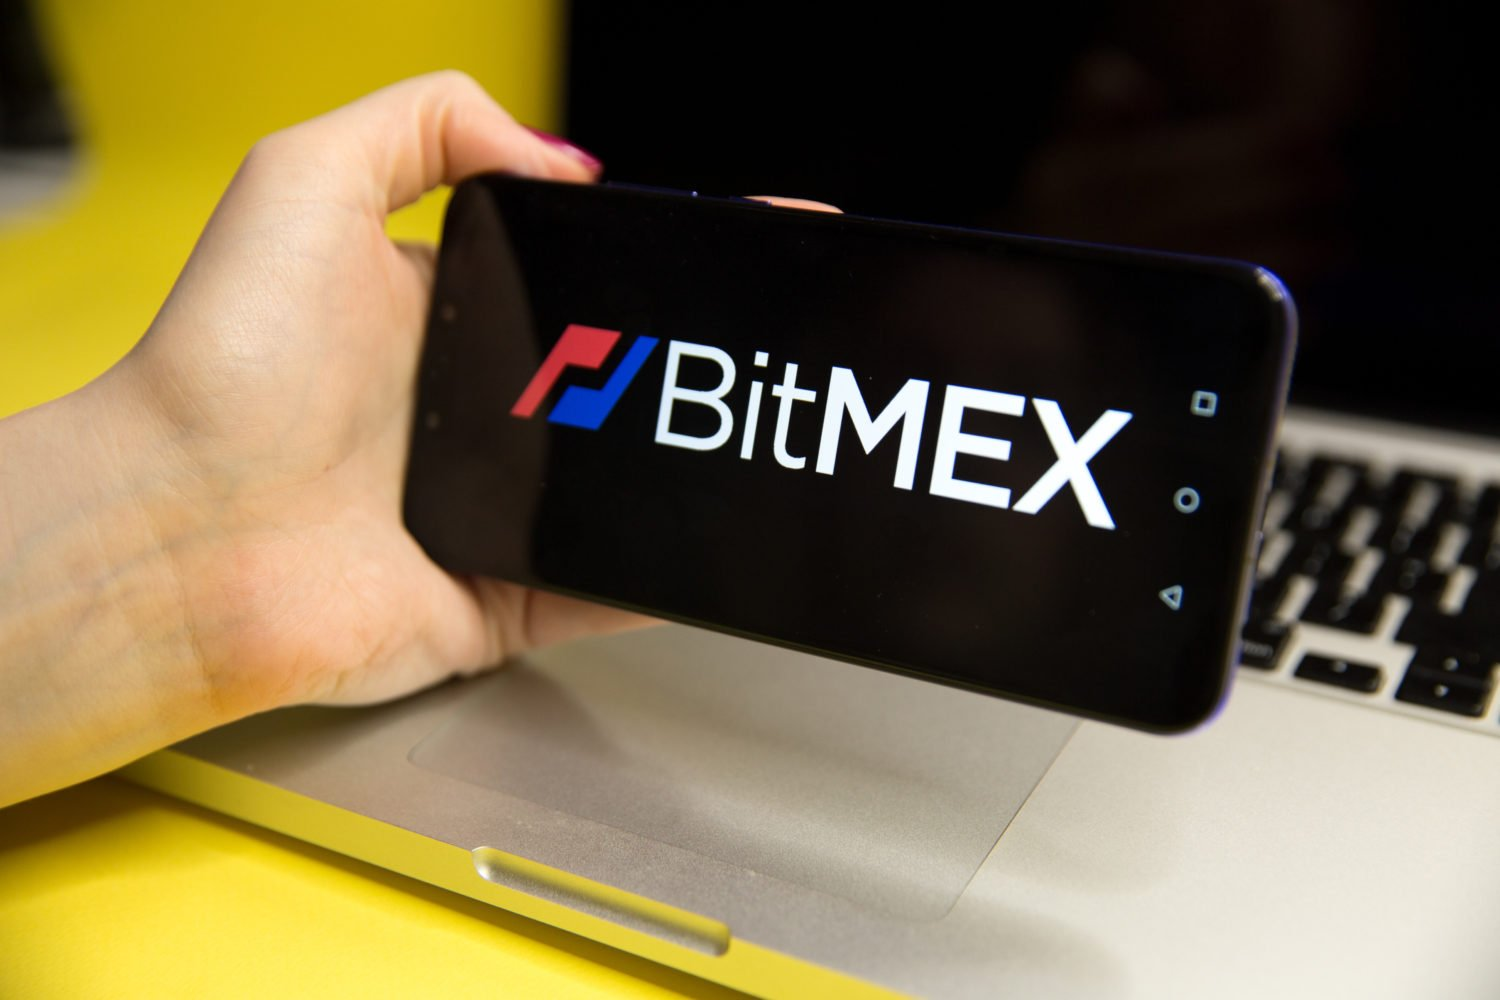 BitMEX adds native SegWit support for bitcoin withdrawals